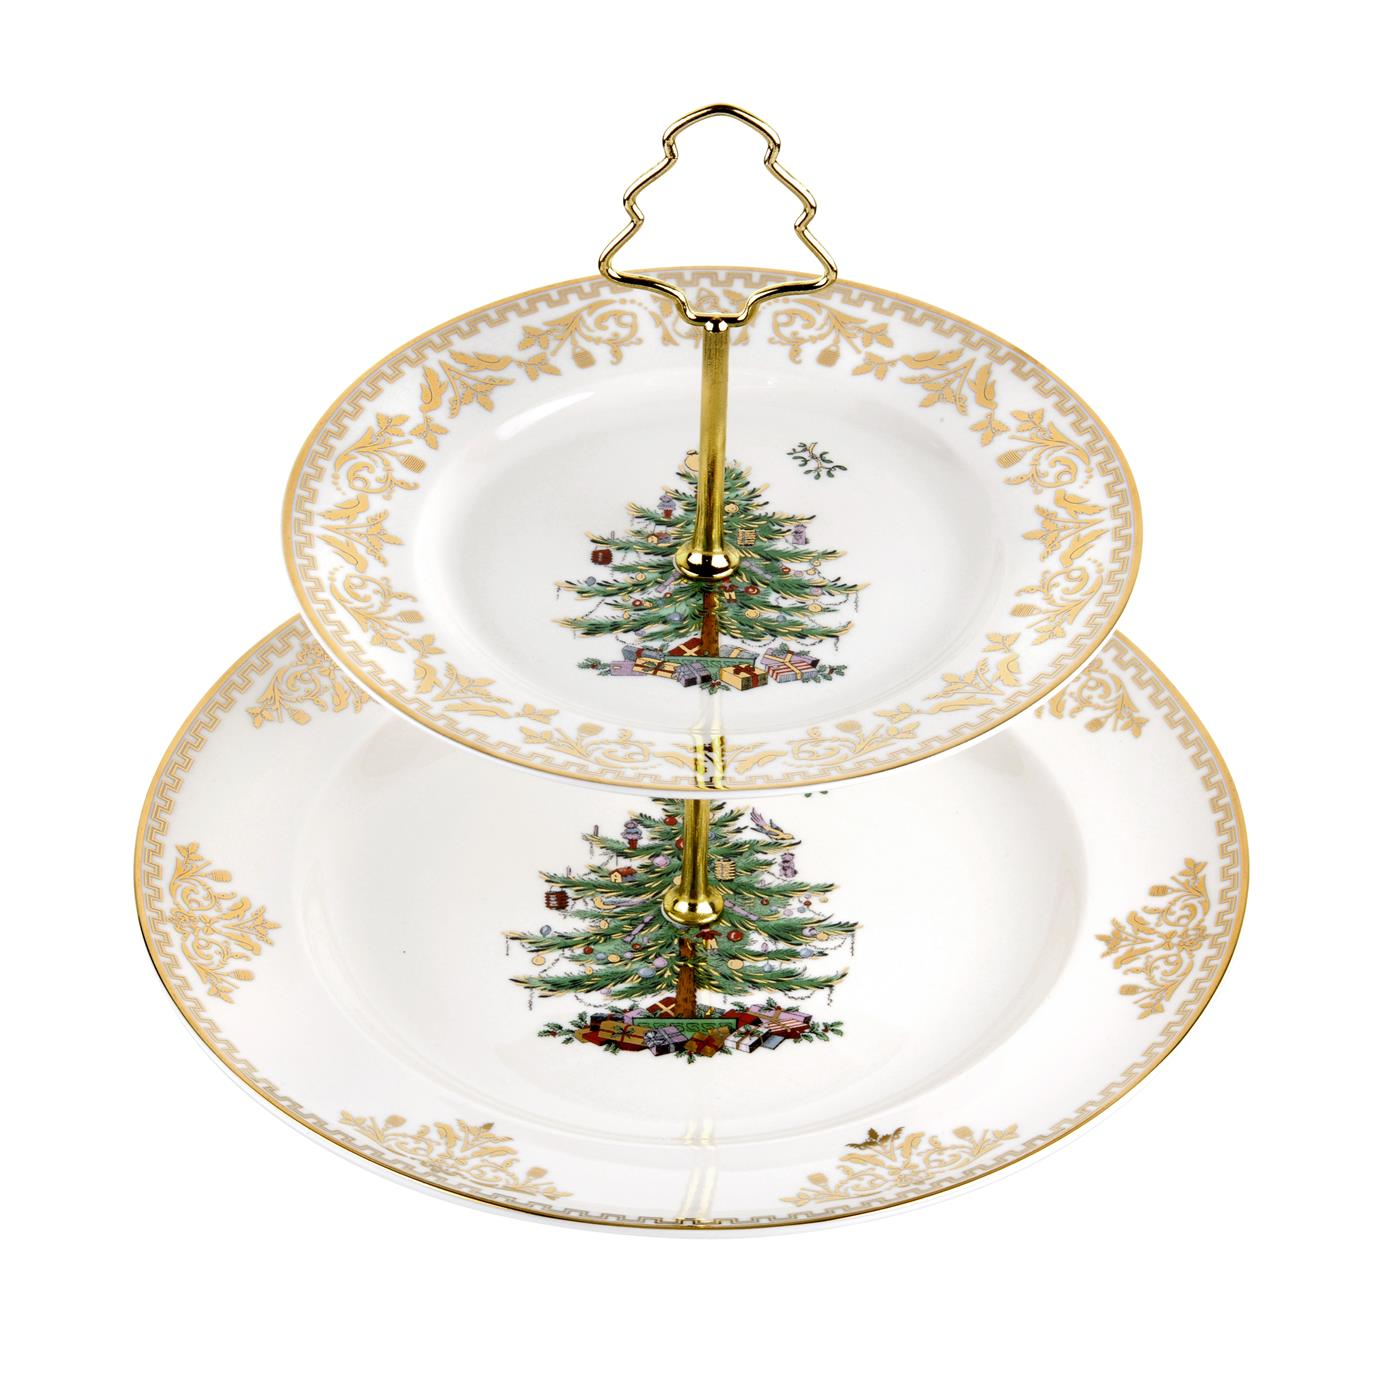 Spode Christmas Tree Gold Collection 2-Tier Cake Stand image number 0